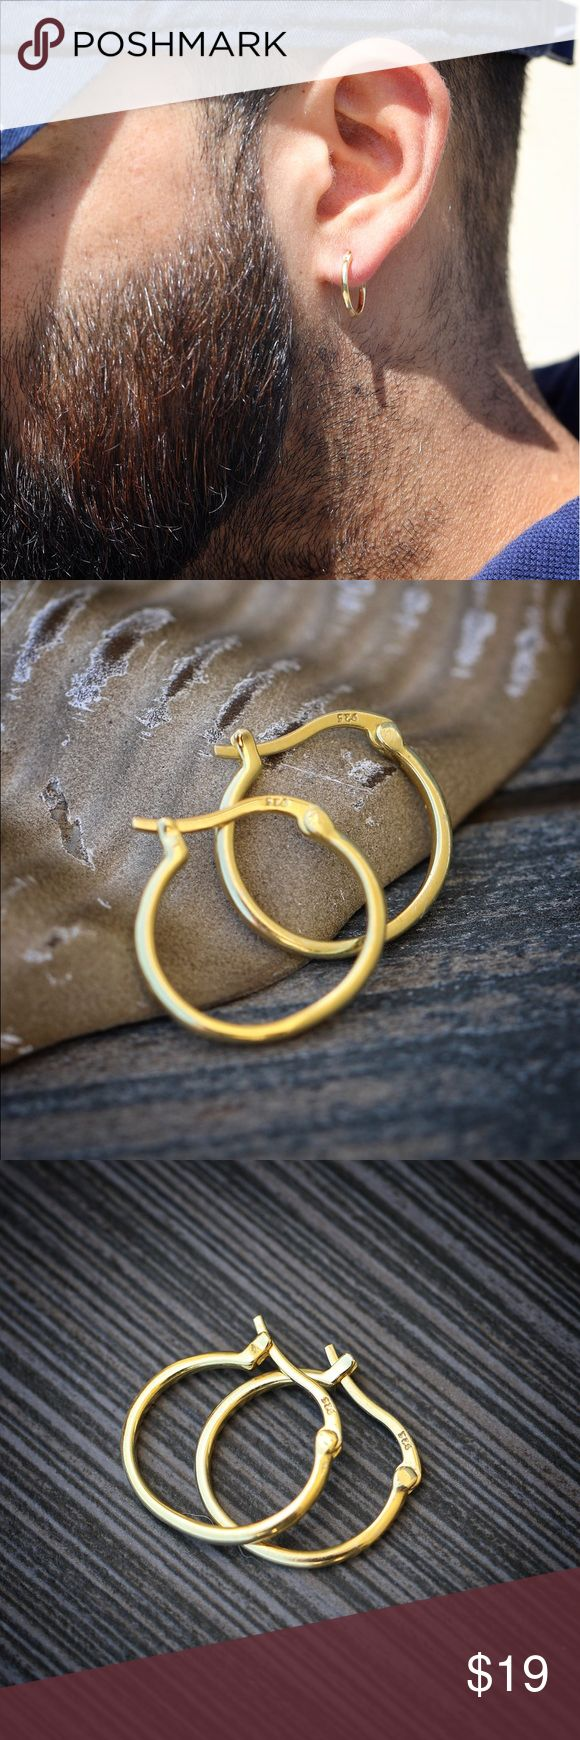 Gold Plated Sterling Silver Men's Hoop Earrings 14k Gold Plated 925 Sterling Silver Men's Hoop Earrings  These hoops are made of pure high quality 925 sterling silver. Size is 12mm  14k gold plated over 925 sterling silver. TSV Jewelers Accessories Jewelry